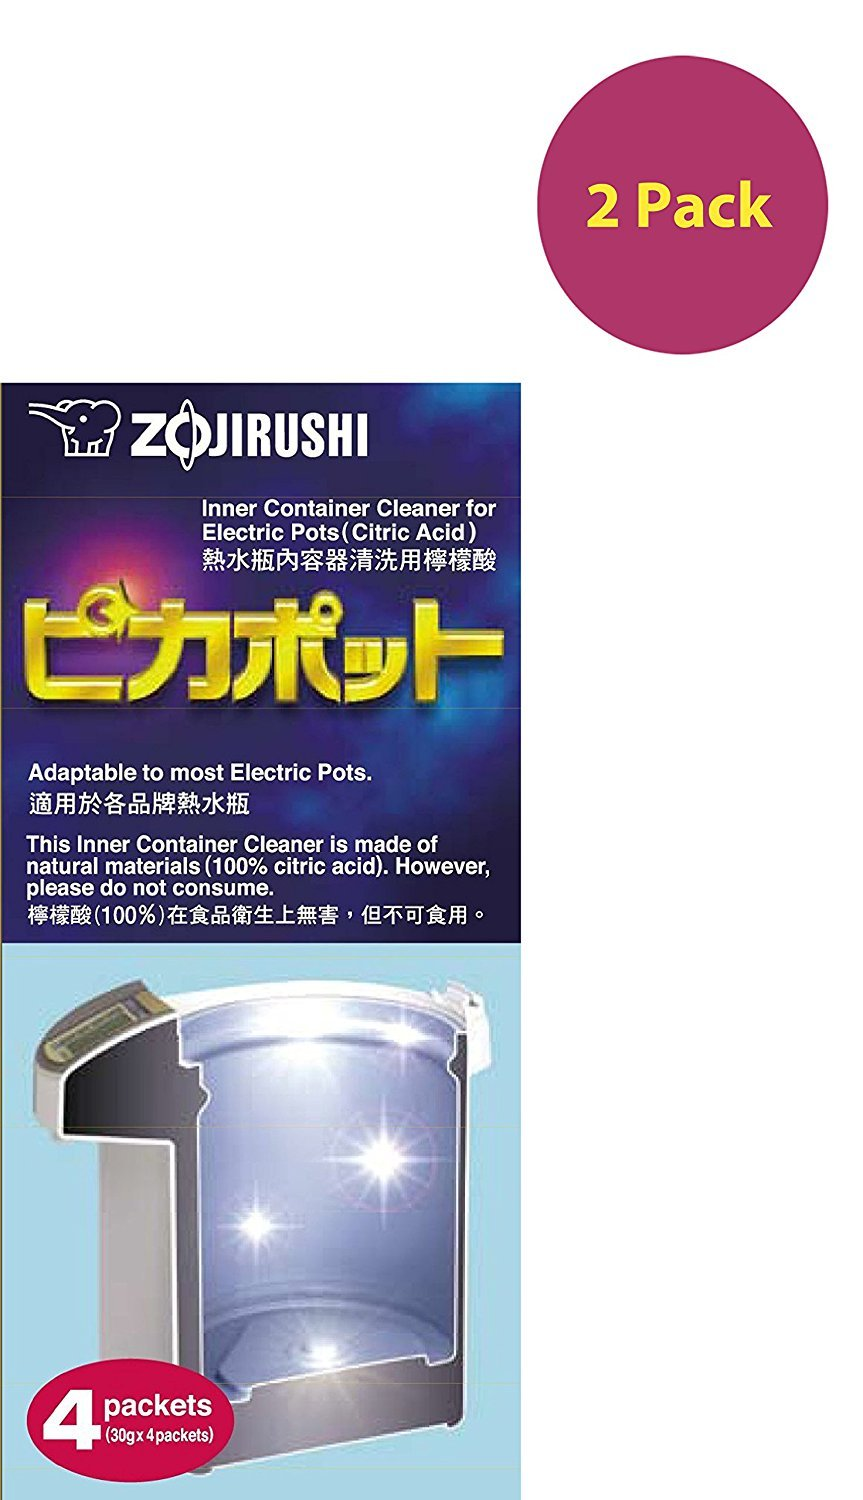 Zojirushi #CD-K03EJU Inner Container Cleaner for Electric Pots, 8 Packets by Zojirushi